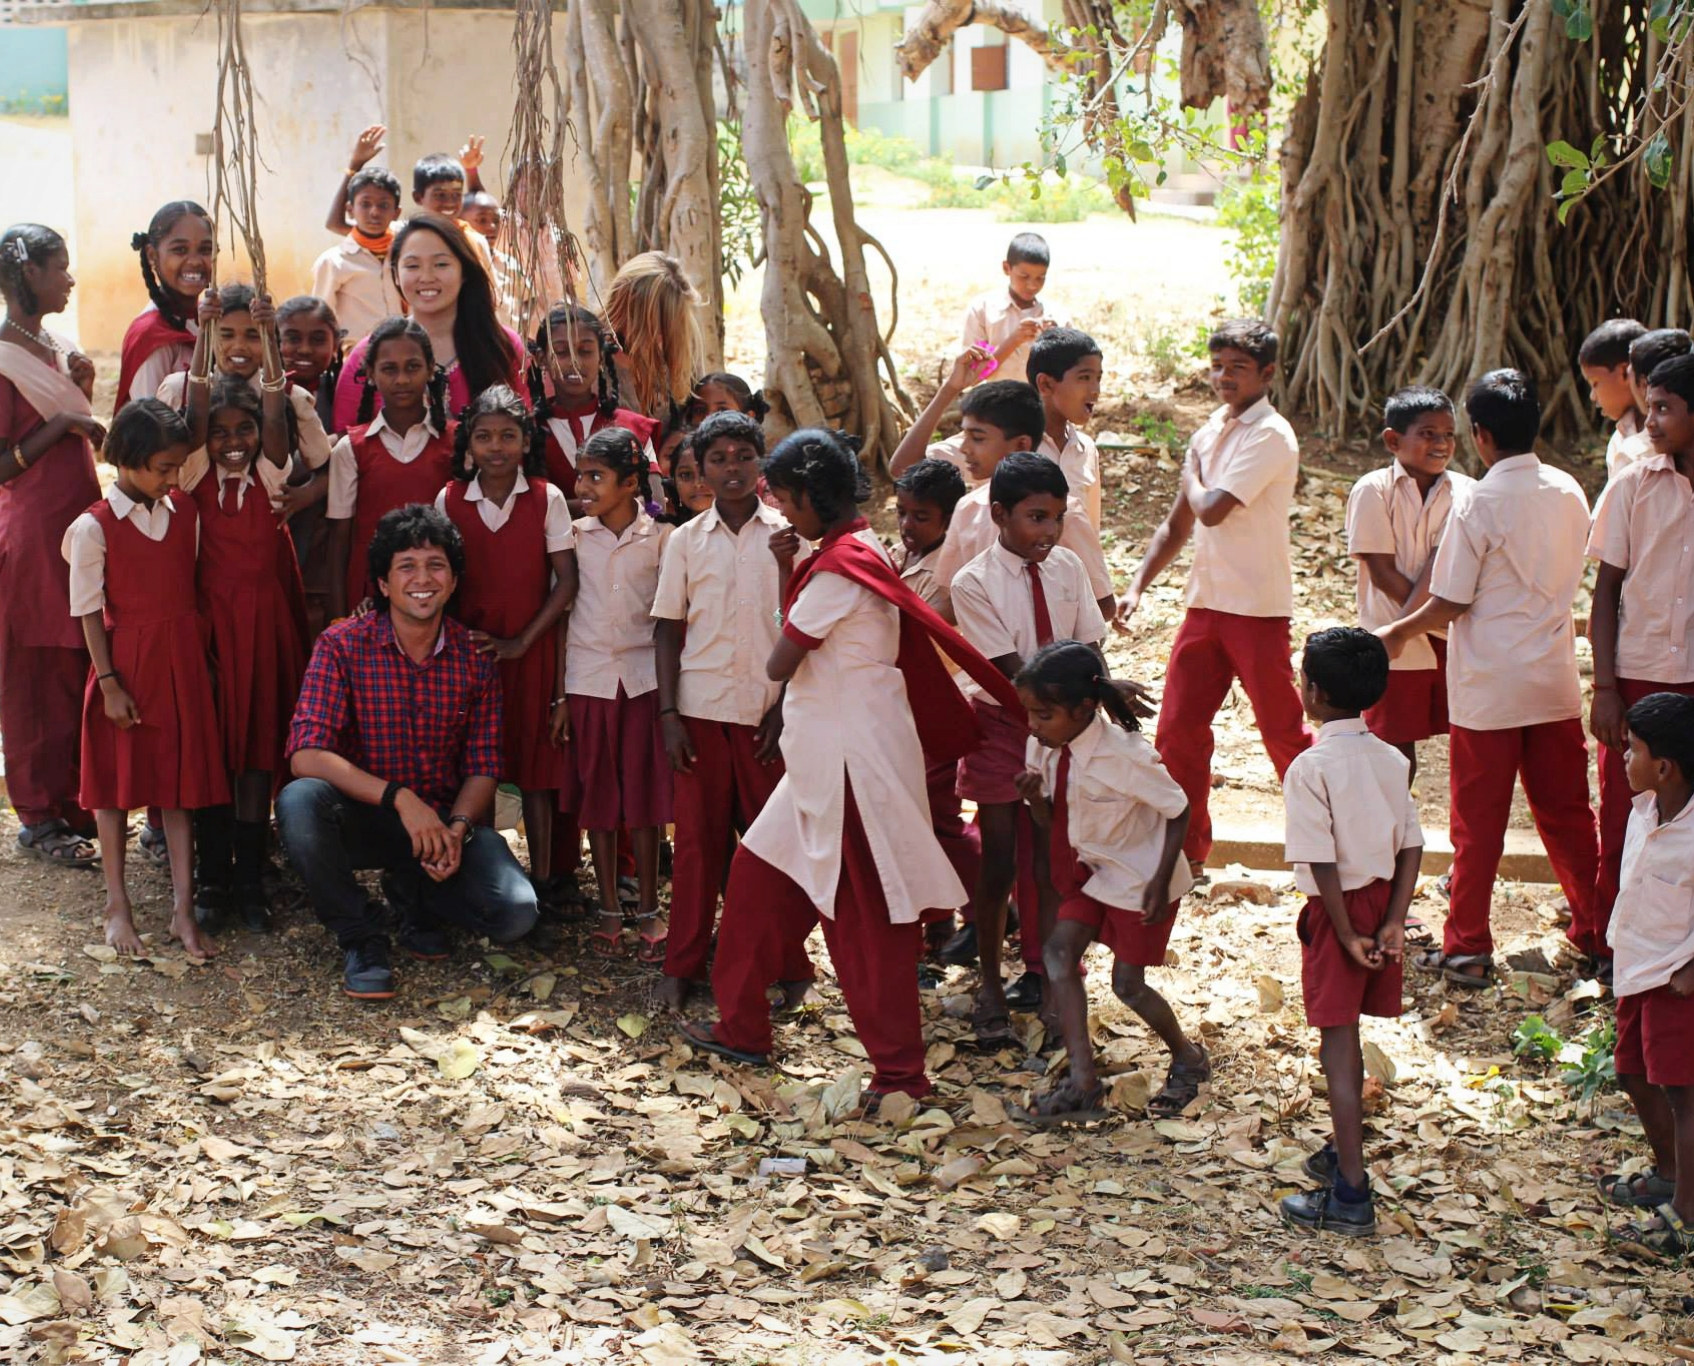 schools-like-this-one-in-the-bandipur-tiger-reserve-area-saw-an-86-improvement-in-student-outcomes-%2f%2f-photo-from-guru-g